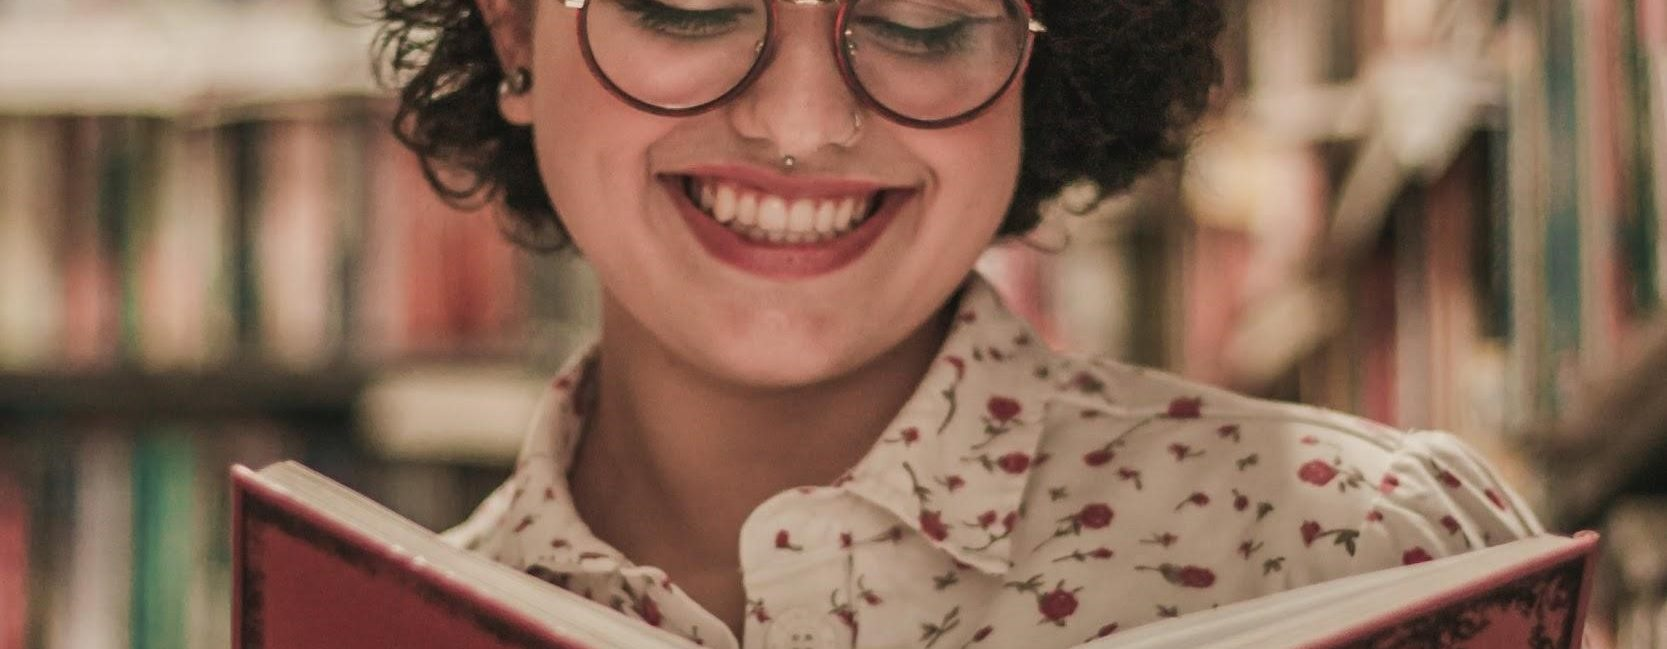 5 Myths About Cheap Eyeglasses That You Should Know